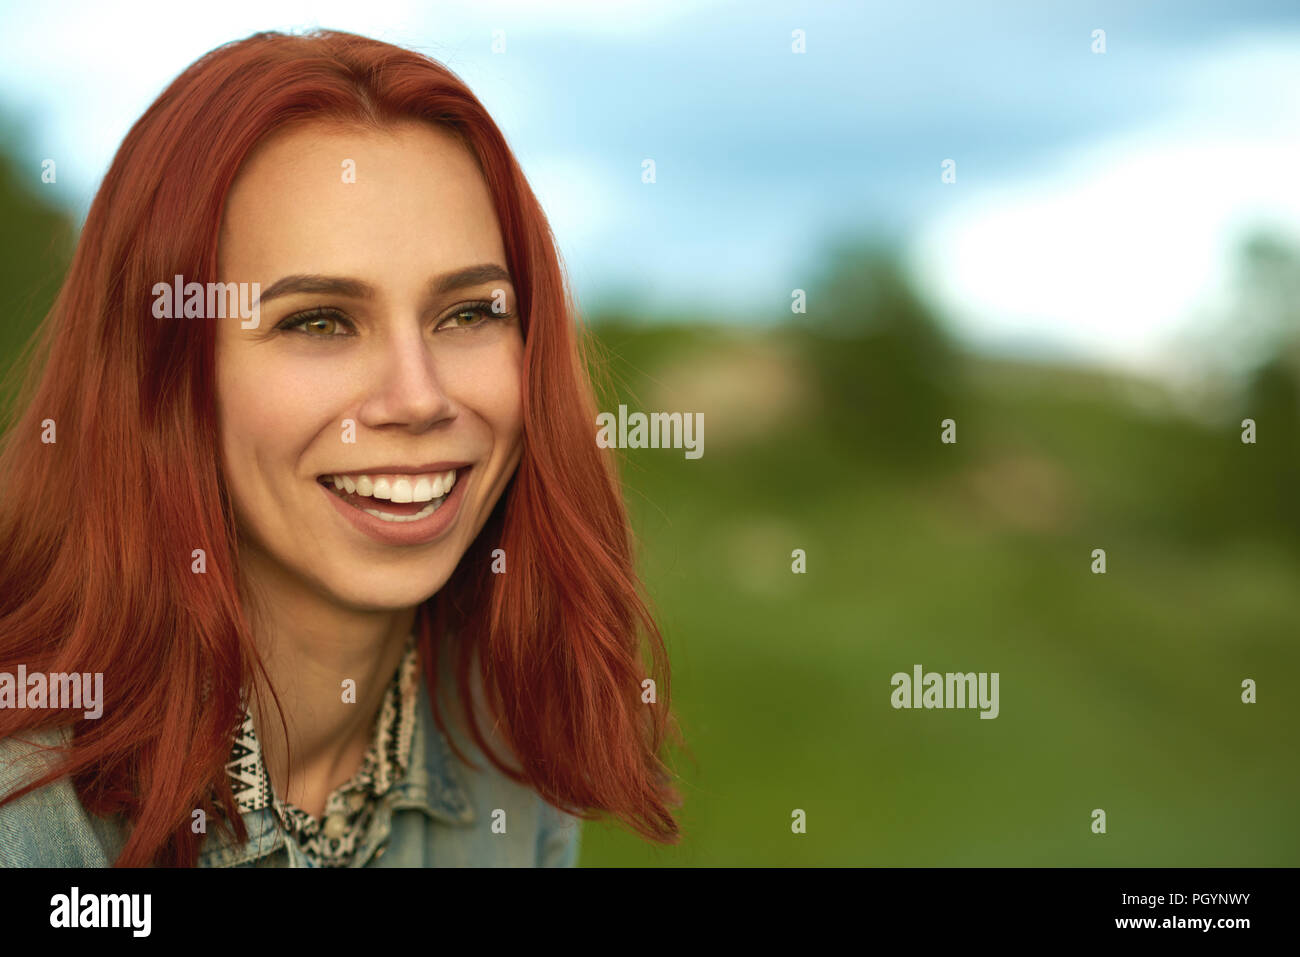 Laughing woman with short red hair posing on green field